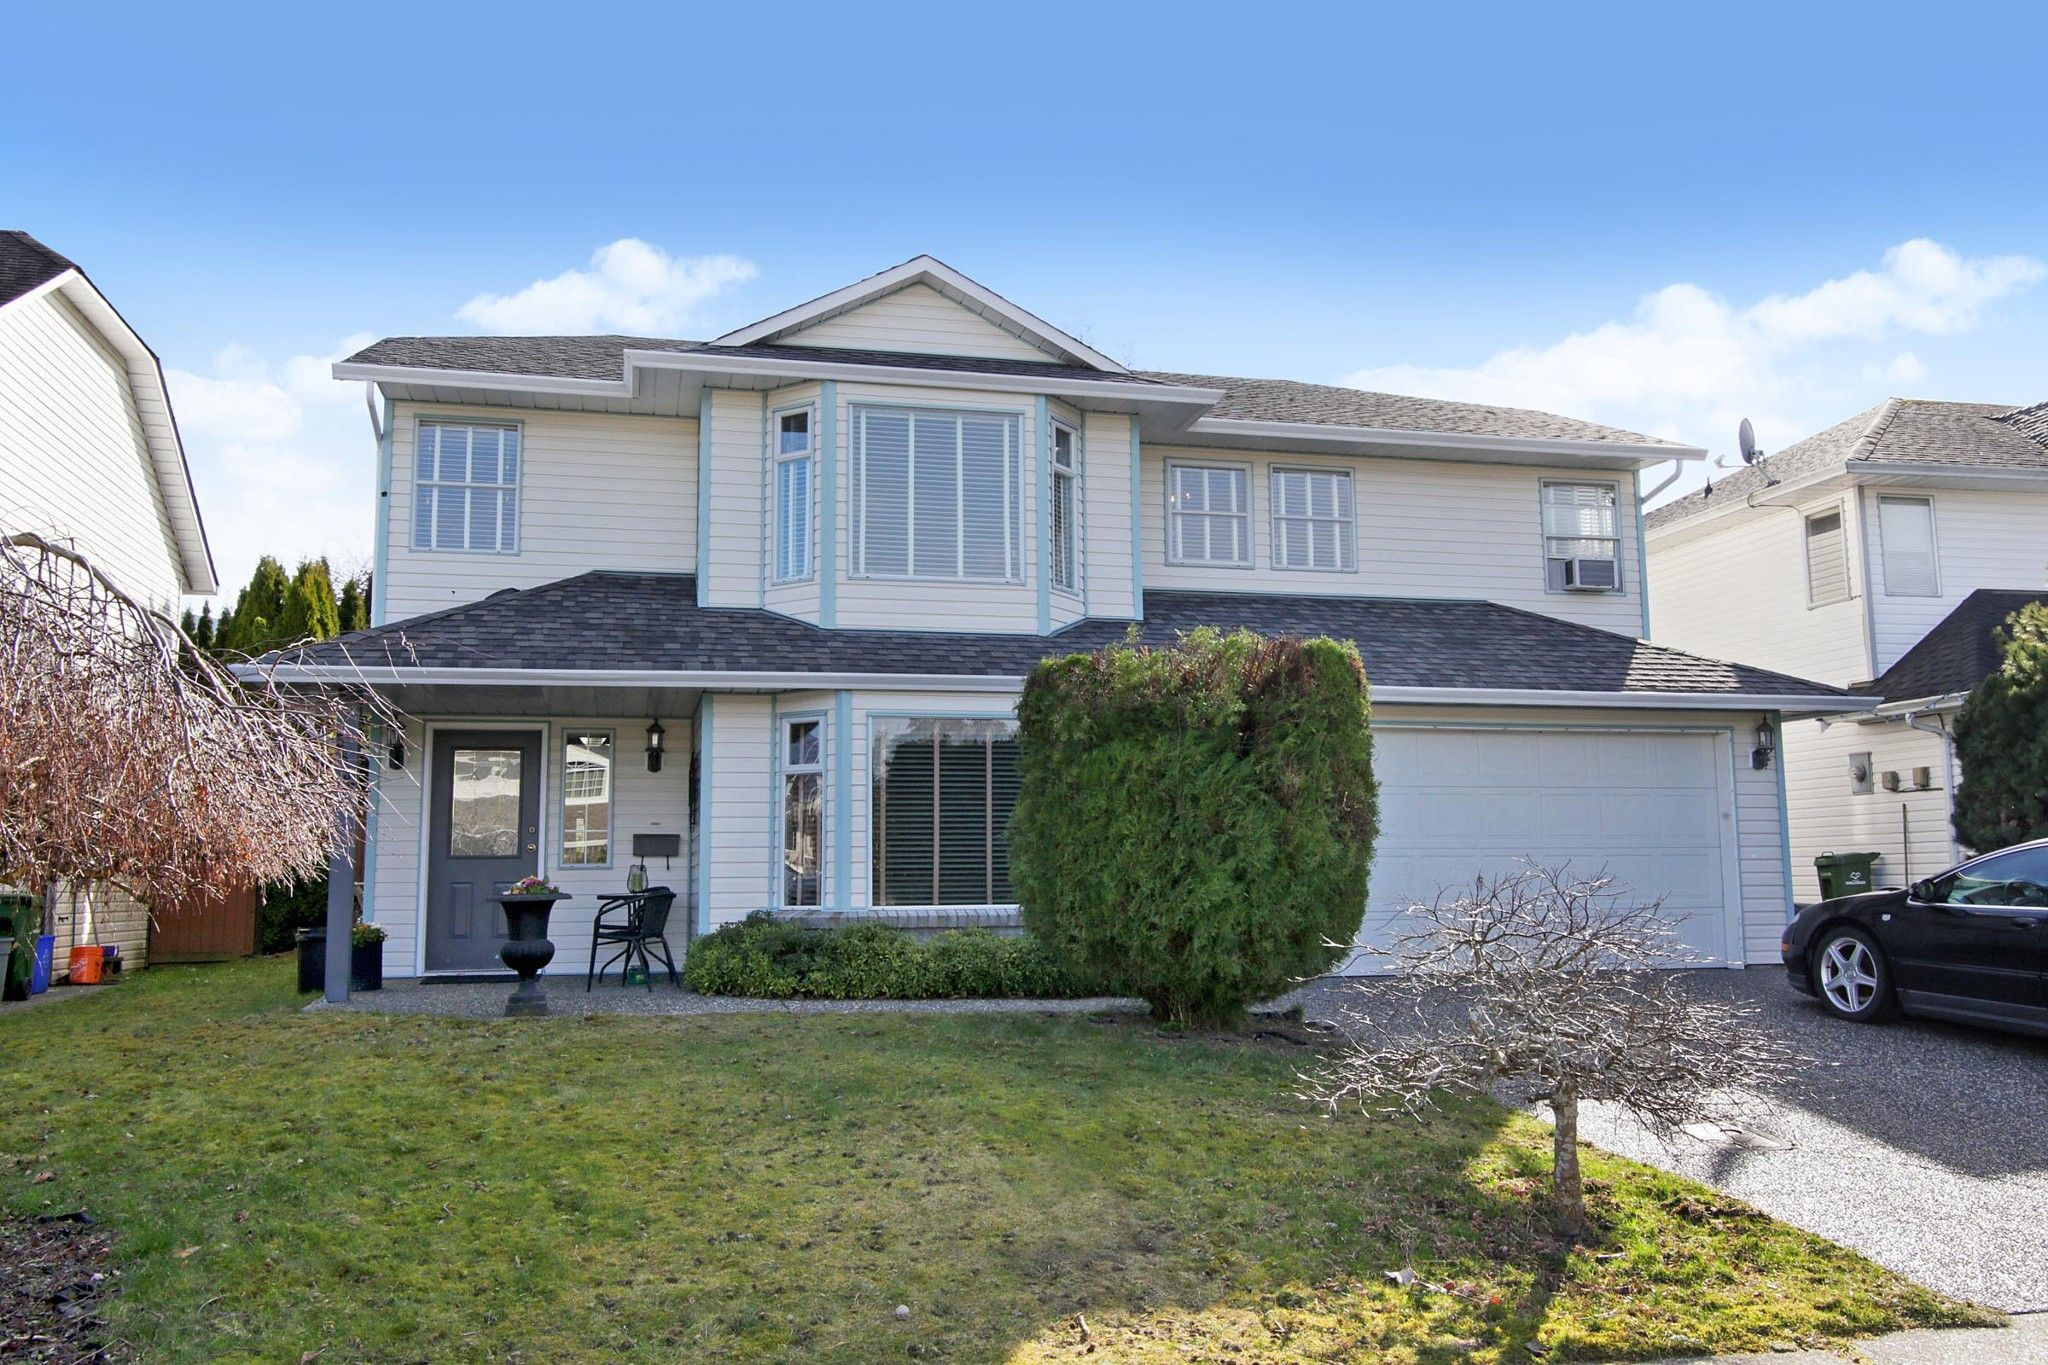 Main Photo: 5637 KATHLEEN Drive in Chilliwack: Vedder S Watson-Promontory House for sale (Sardis)  : MLS®# R2545995